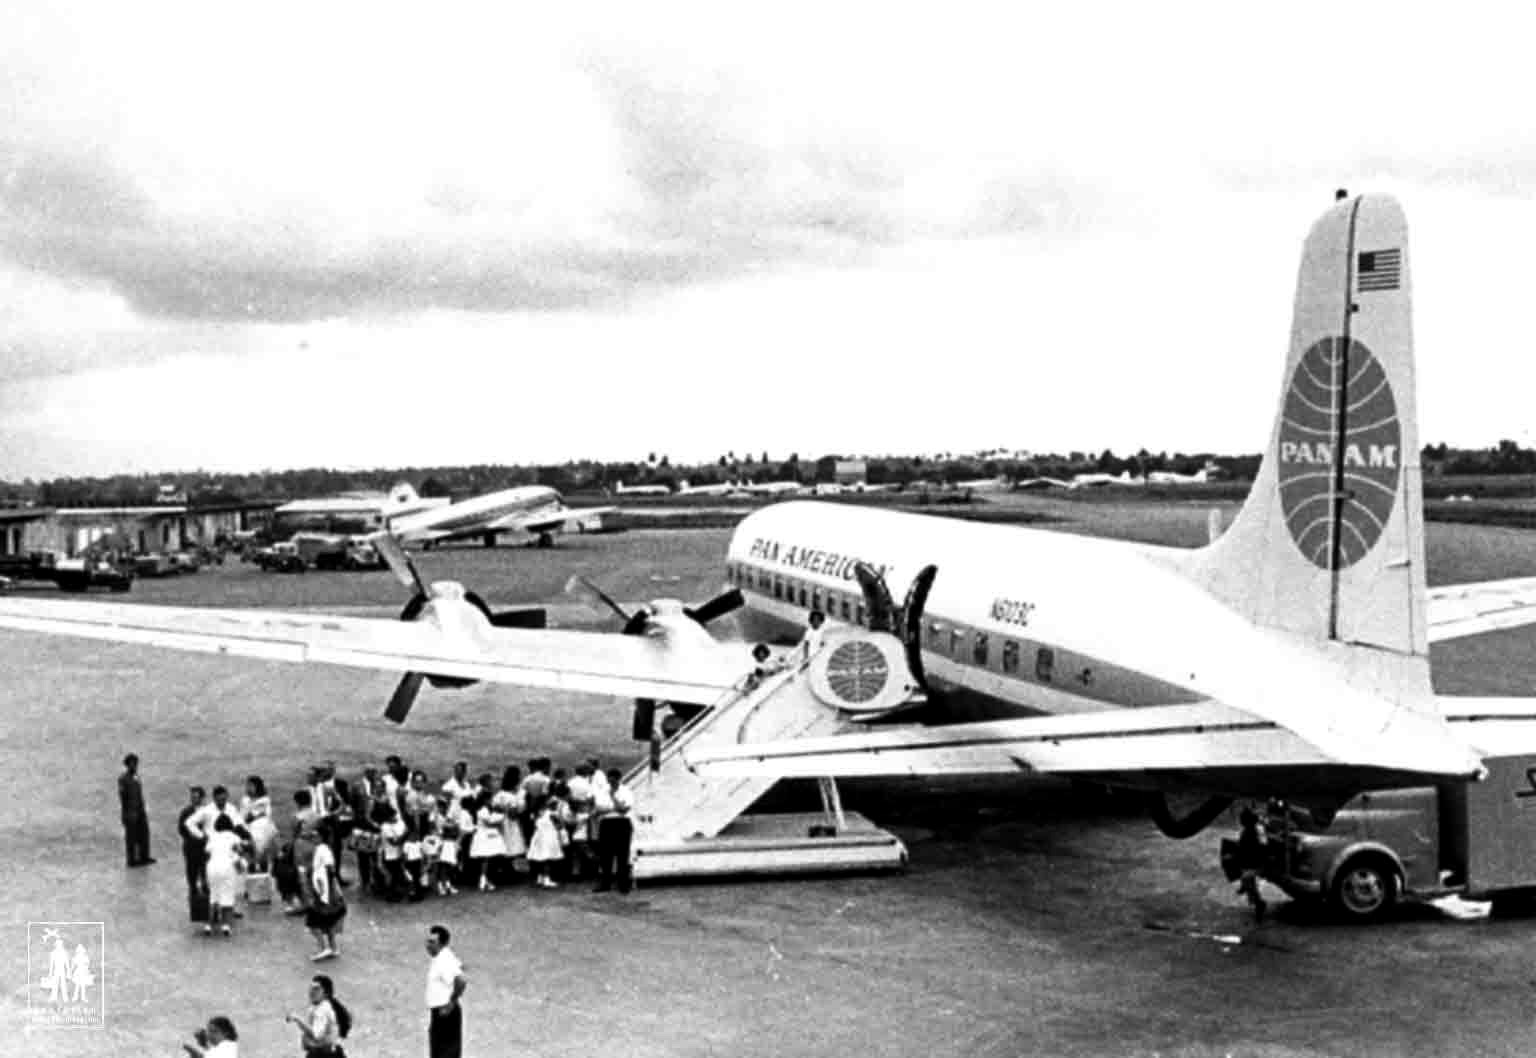 Children's boarding the plane in Cuba